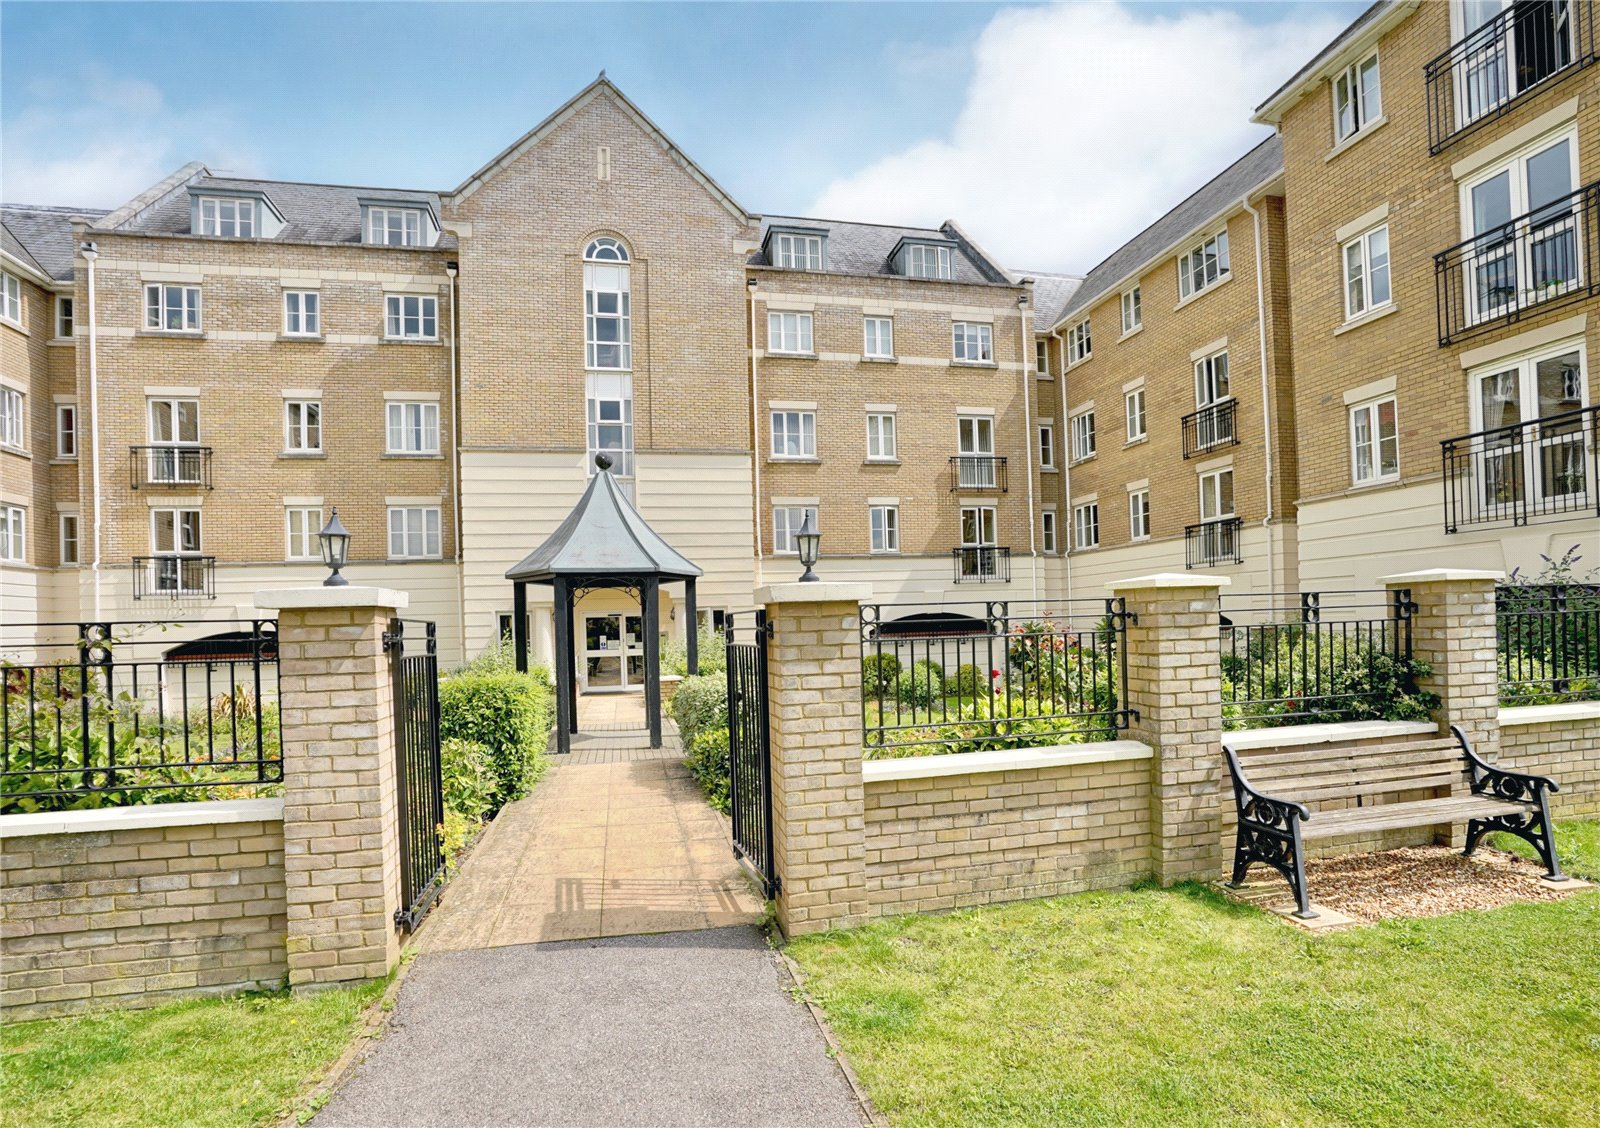 2 bed apartment for sale in Crosshall Road, Eaton Ford, PE19